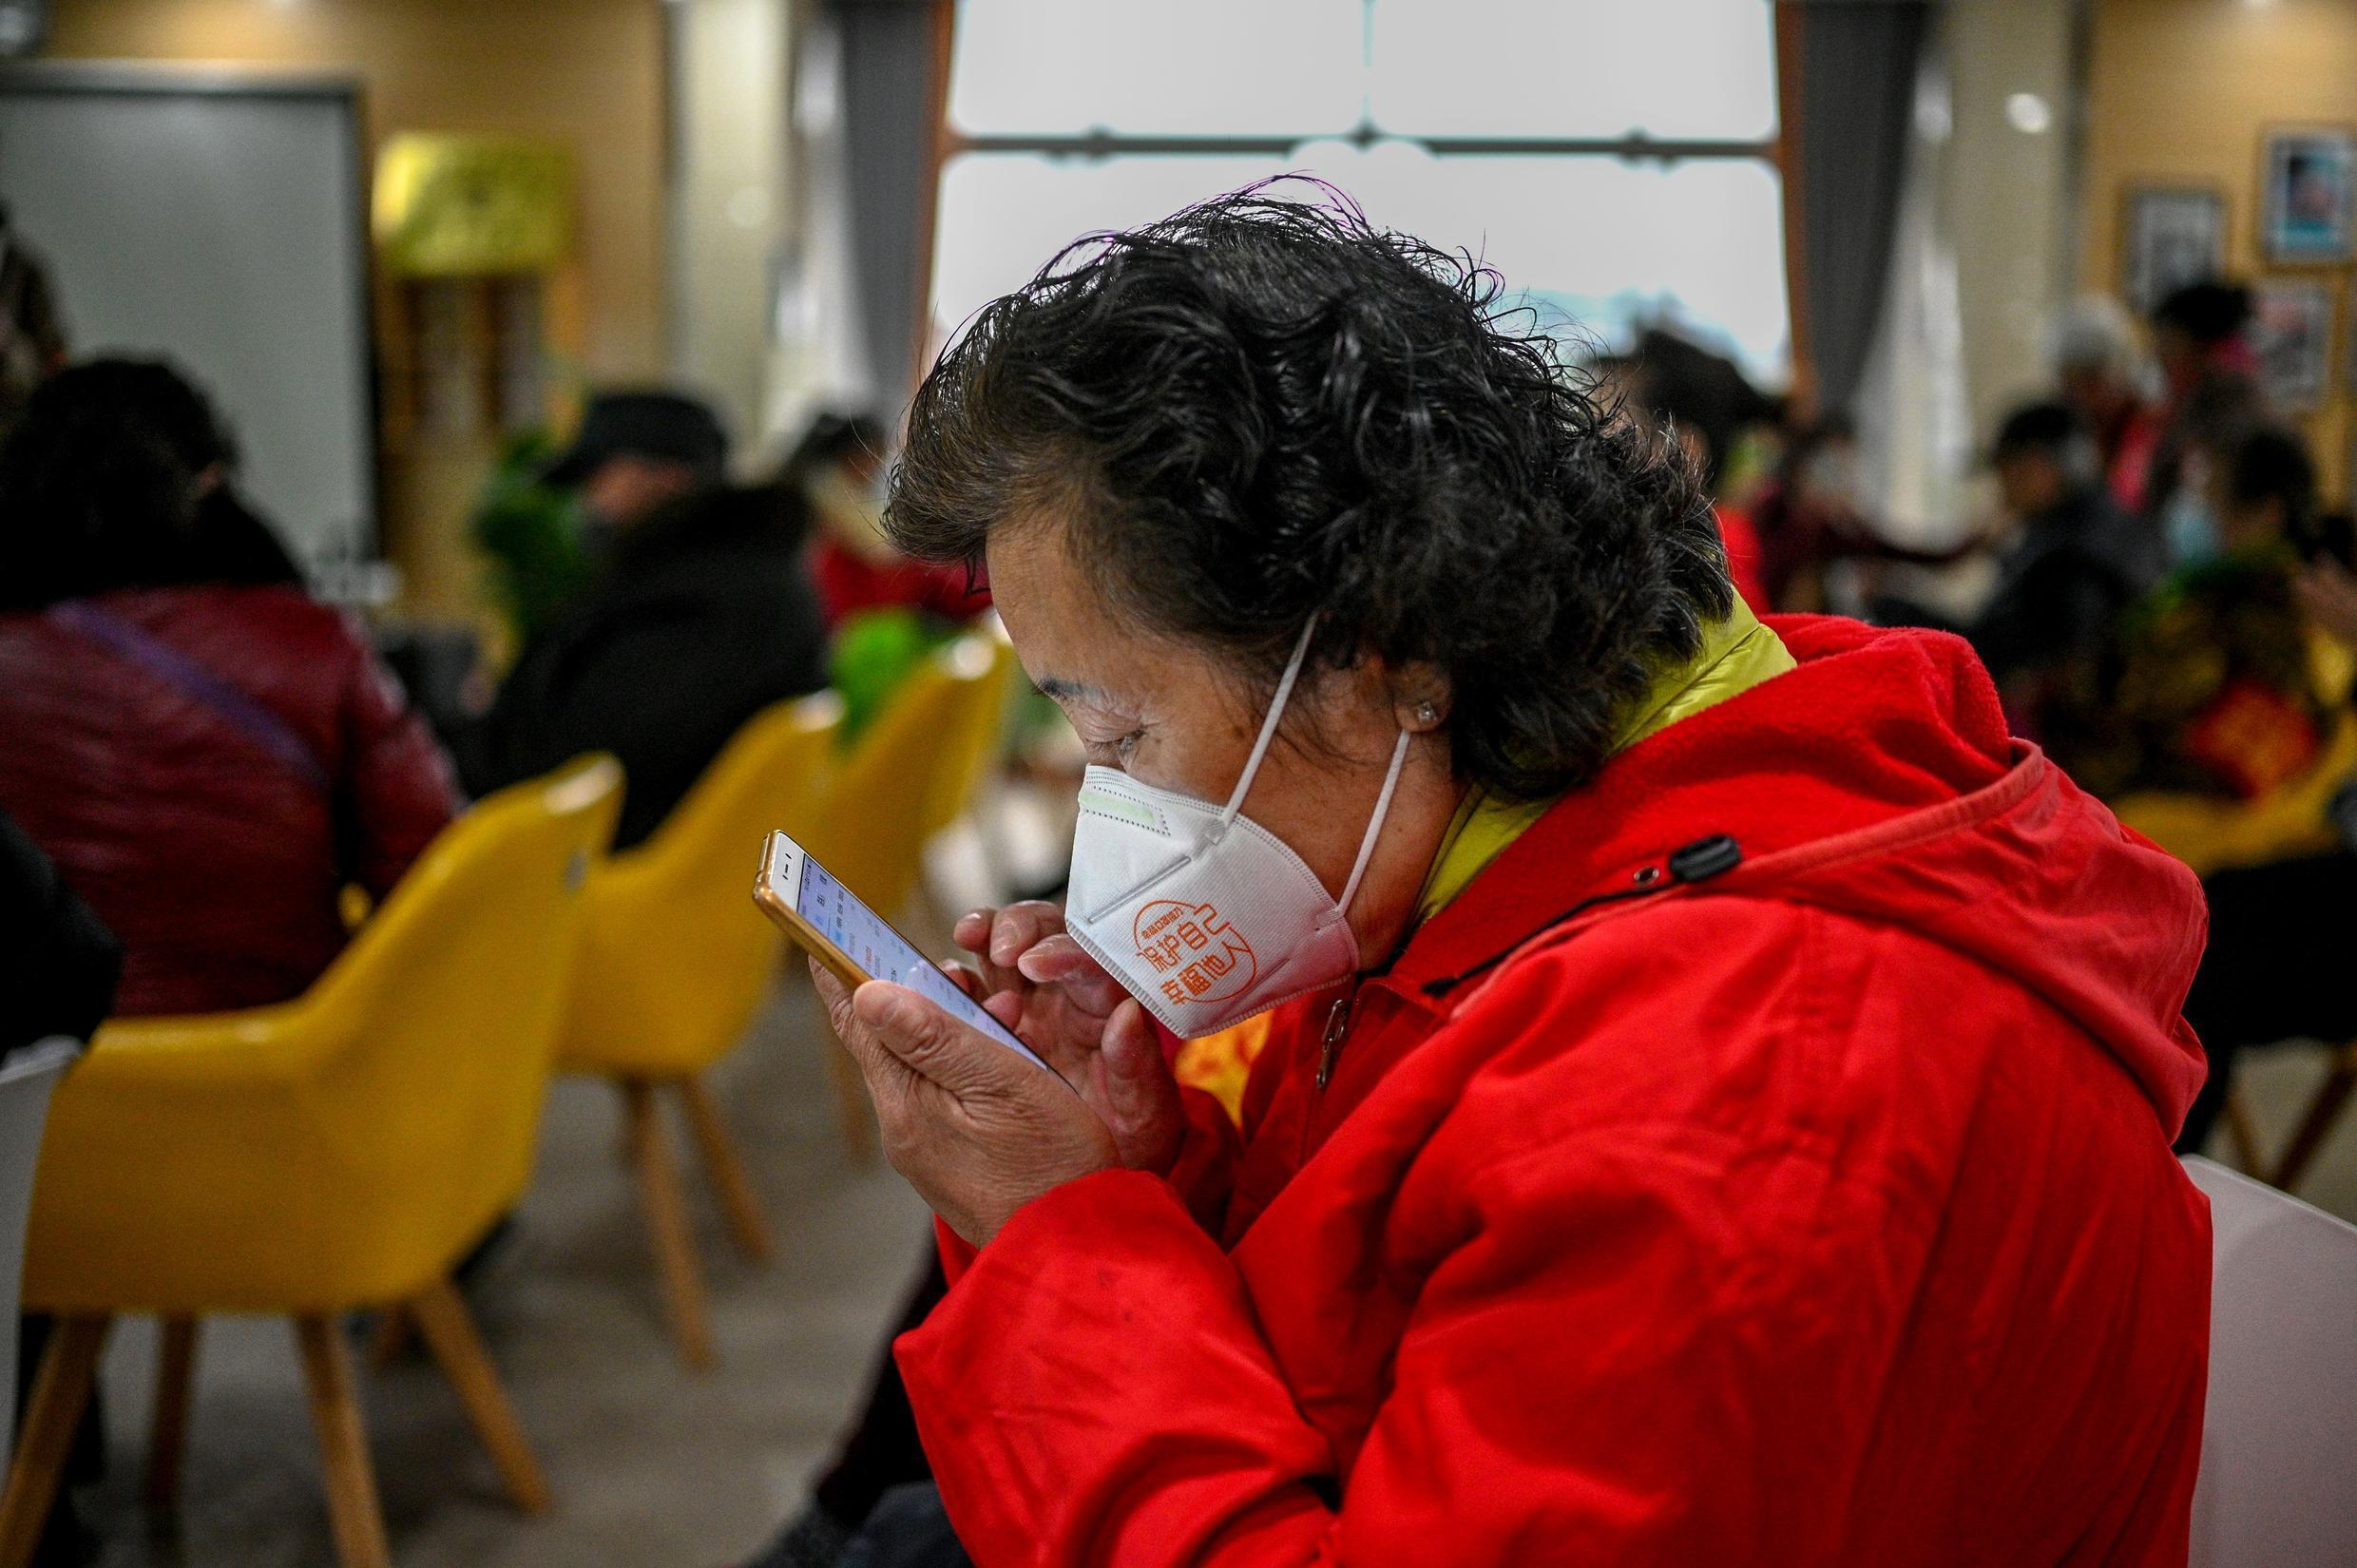 China has plans to help its legions of pensioners keep up with a fast-developing digital economy